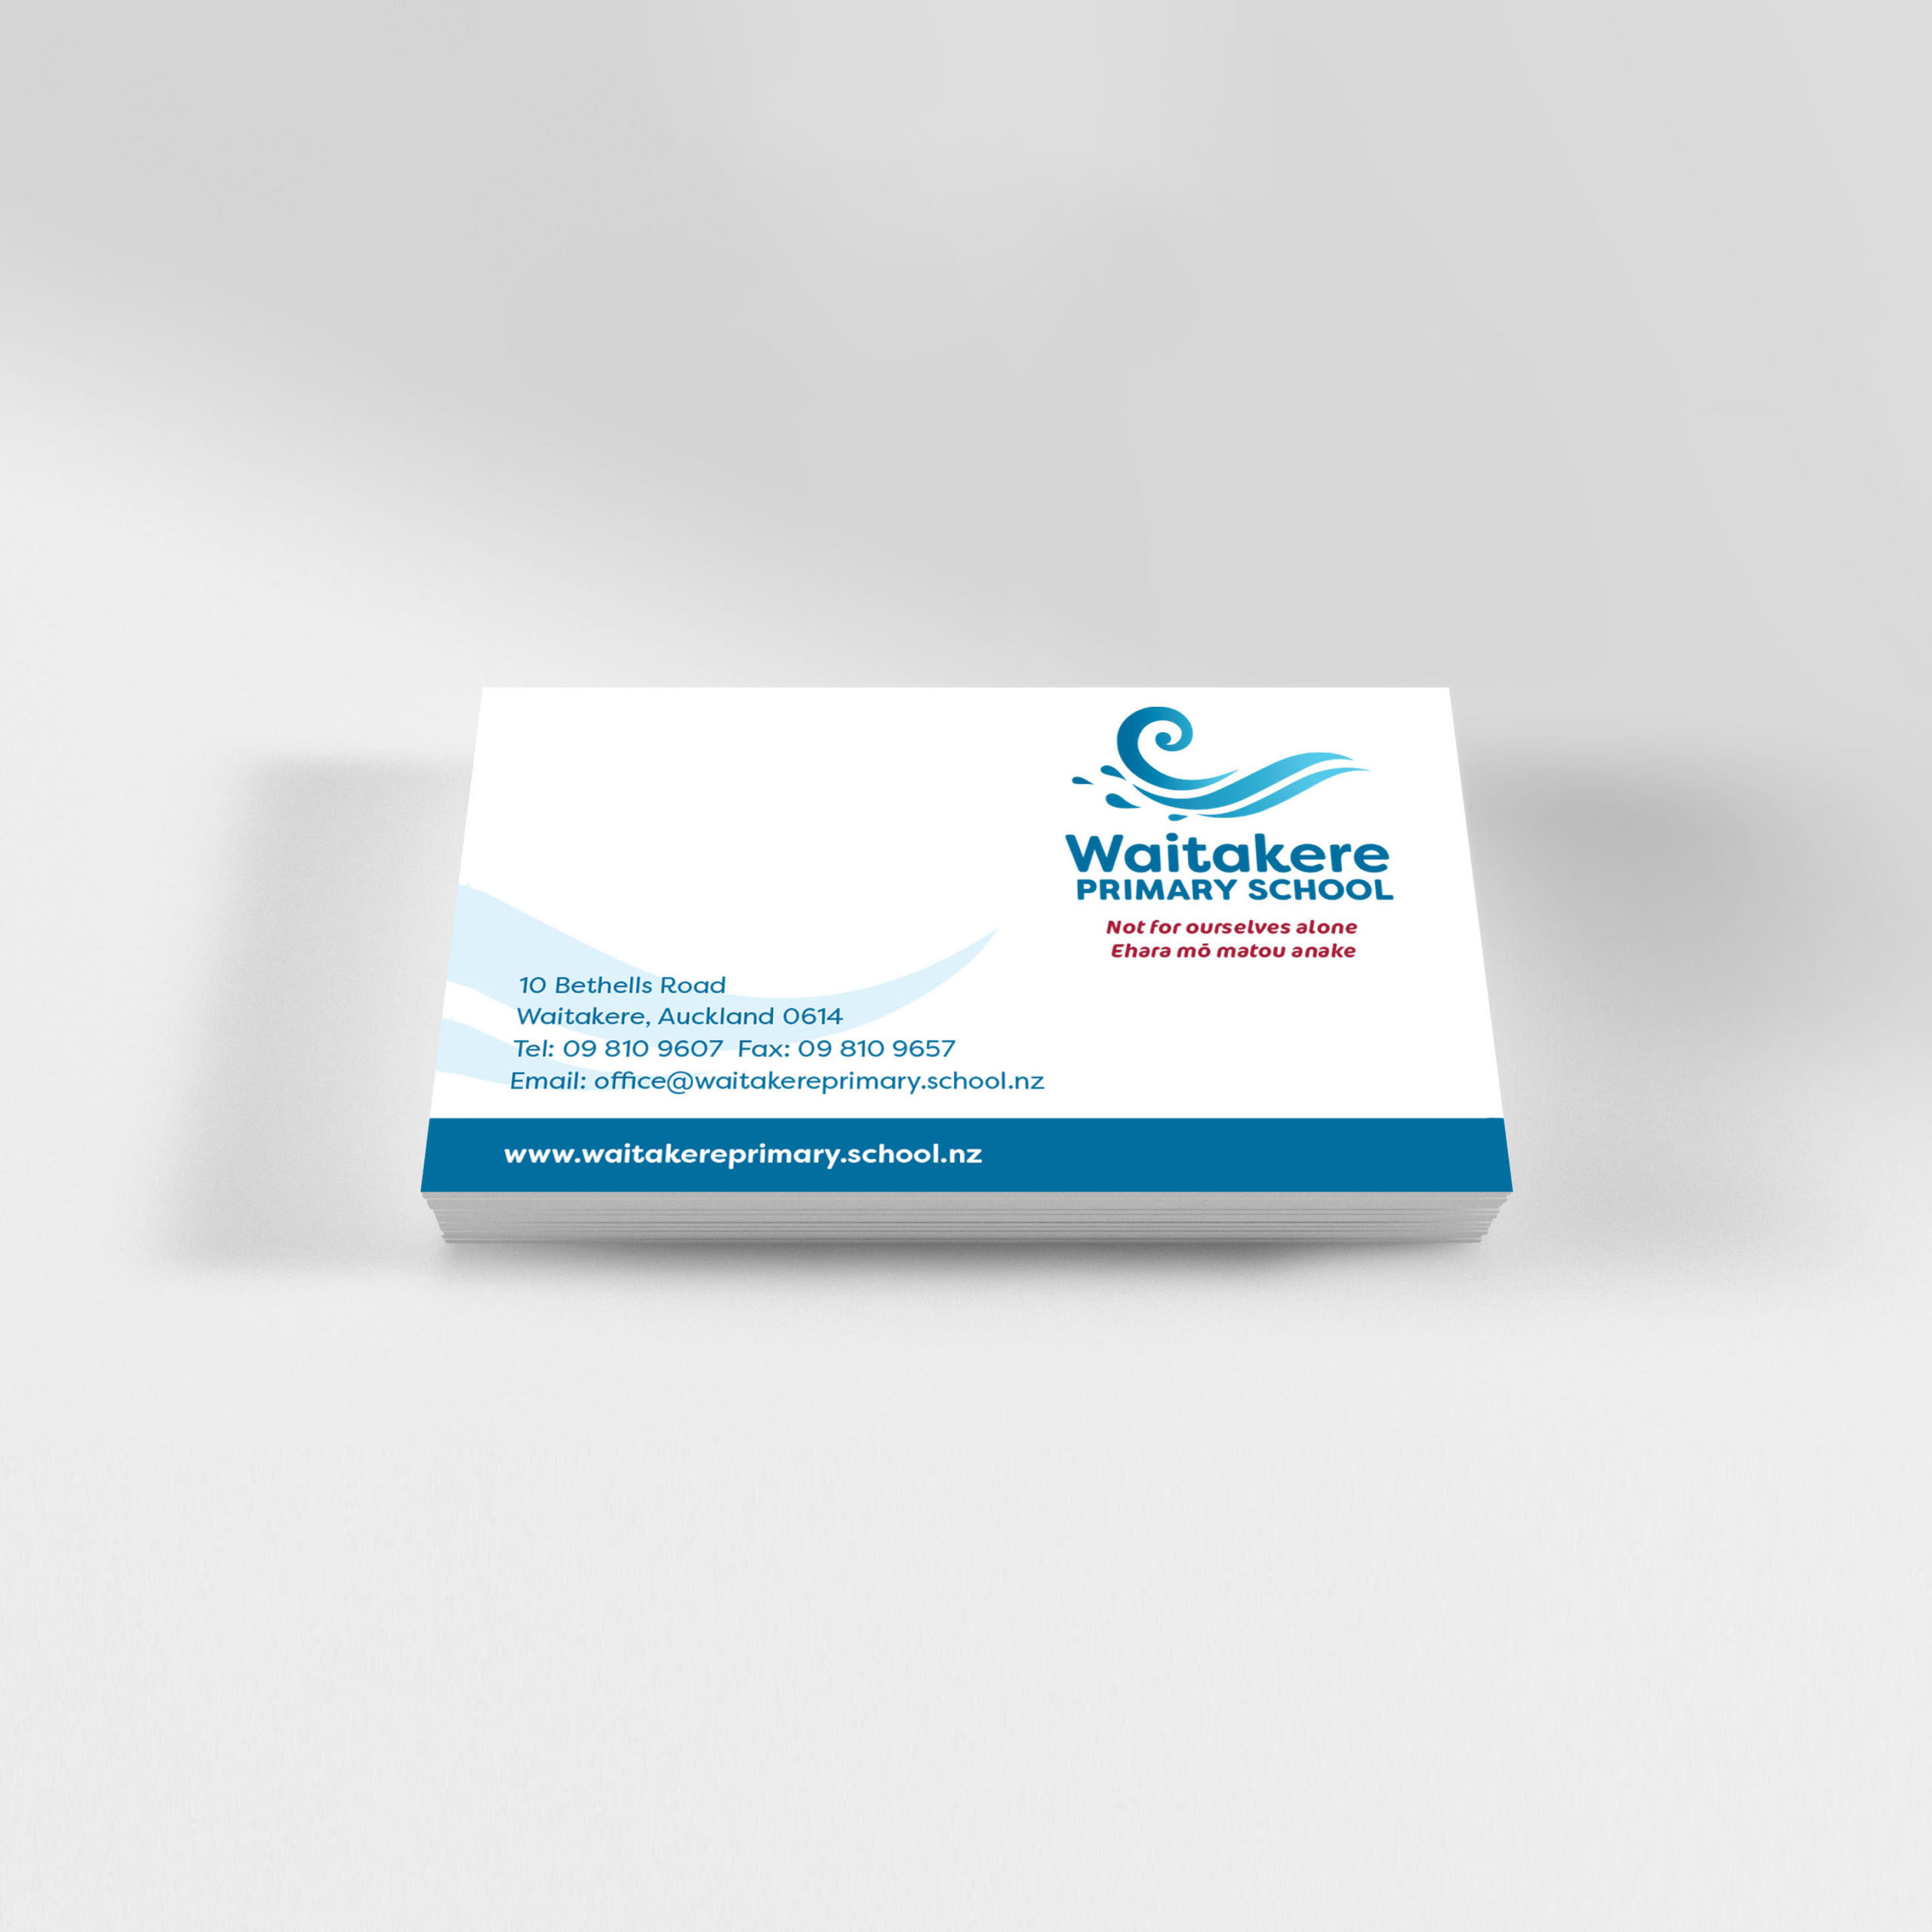 Waitakere Primary School Business Card Design mockup